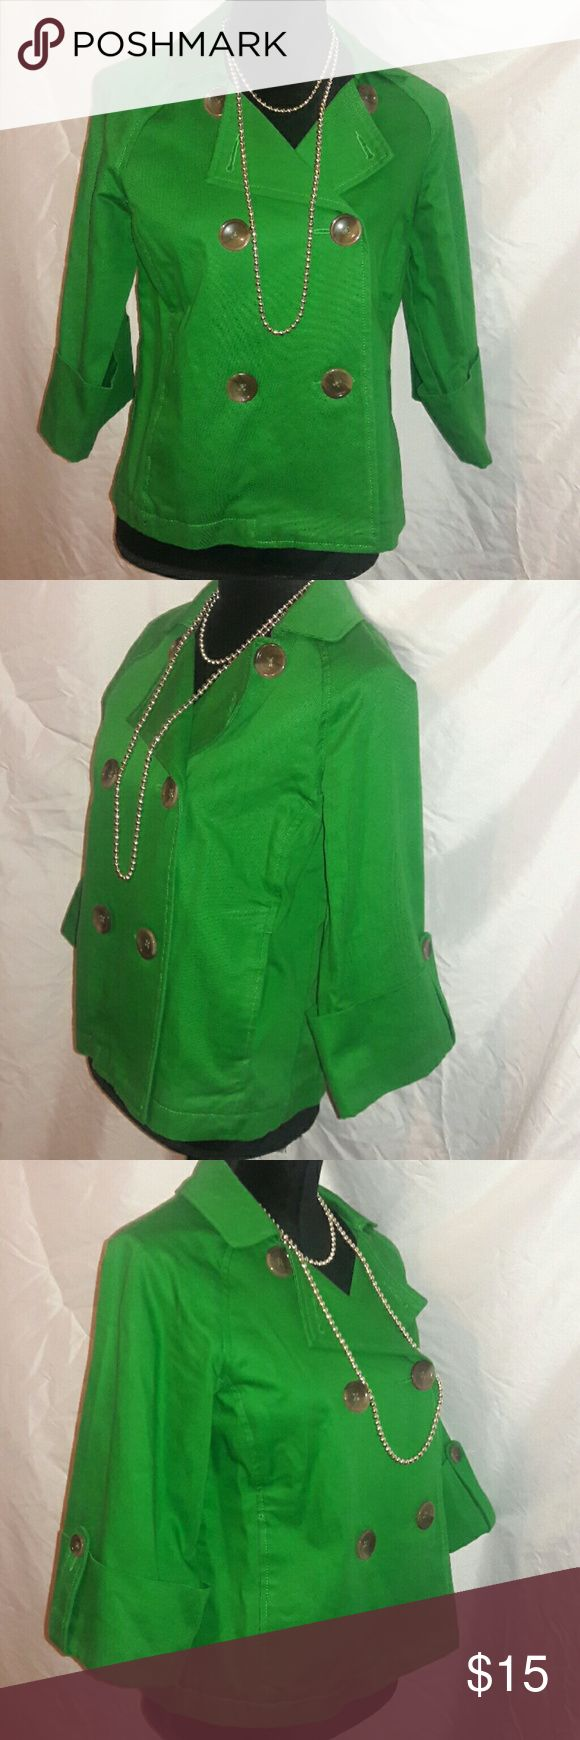 Green Jacket This Gorgeous jacket can be worn to dress up going out on the night...or dress down to wear around town...side pockets to model around...Big Buttons don't care it's a Vintage look! Not Vintage! Lol! Old Navy Jackets & Coats Pea Coats